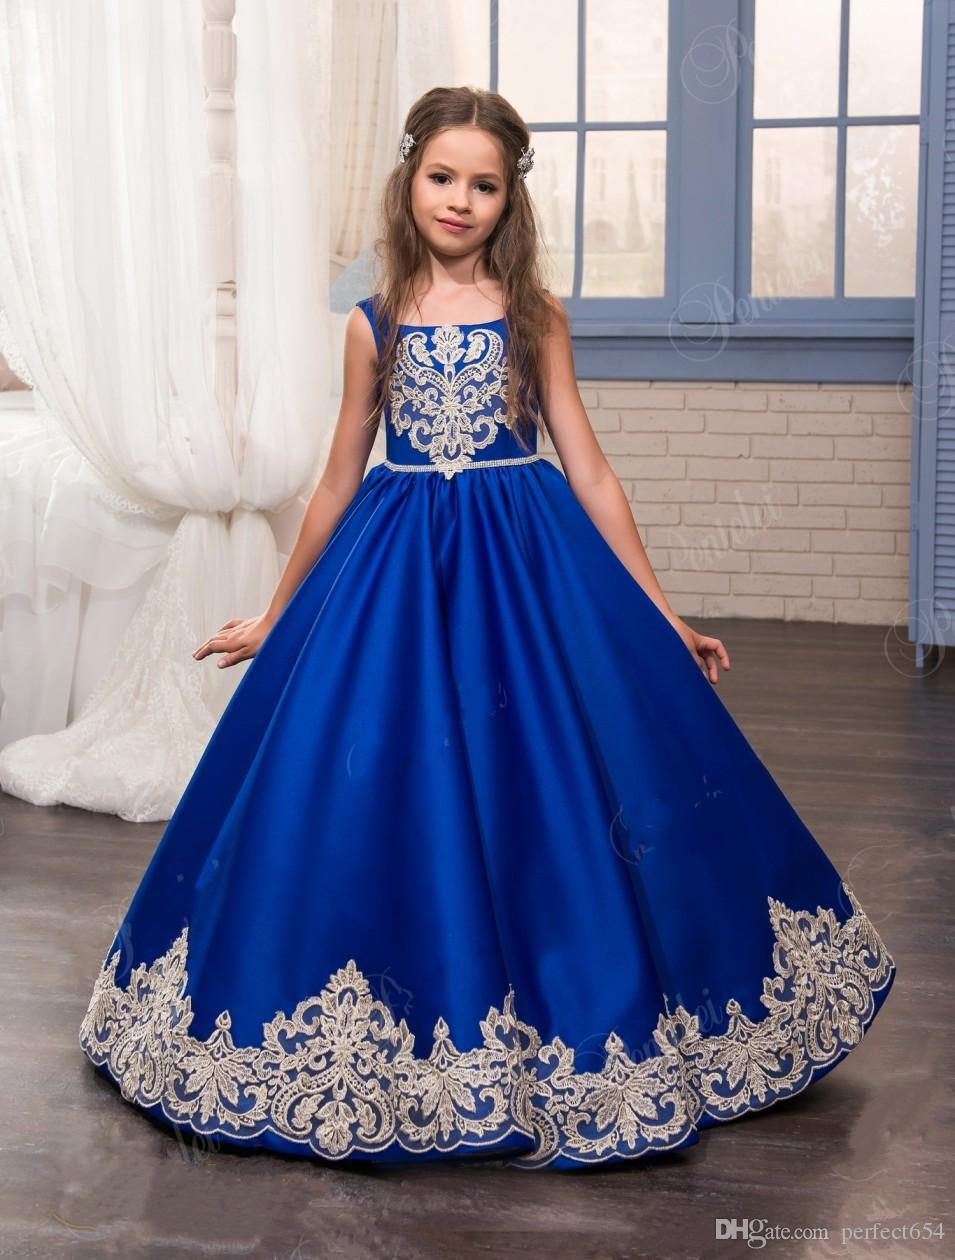 Buy the latest christmas dress cheap shop fashion style with free shipping, and check out our daily updated new arrival christmas dress at learn-islam.gq Plus Size Lace Panel Midi Father Christmas Party Dress - ROYAL - 4XL. USD USD 5 Colors. robe superbe fidèle à mes attentes. Kids,All Material: Others,Resin,Cloth Package.